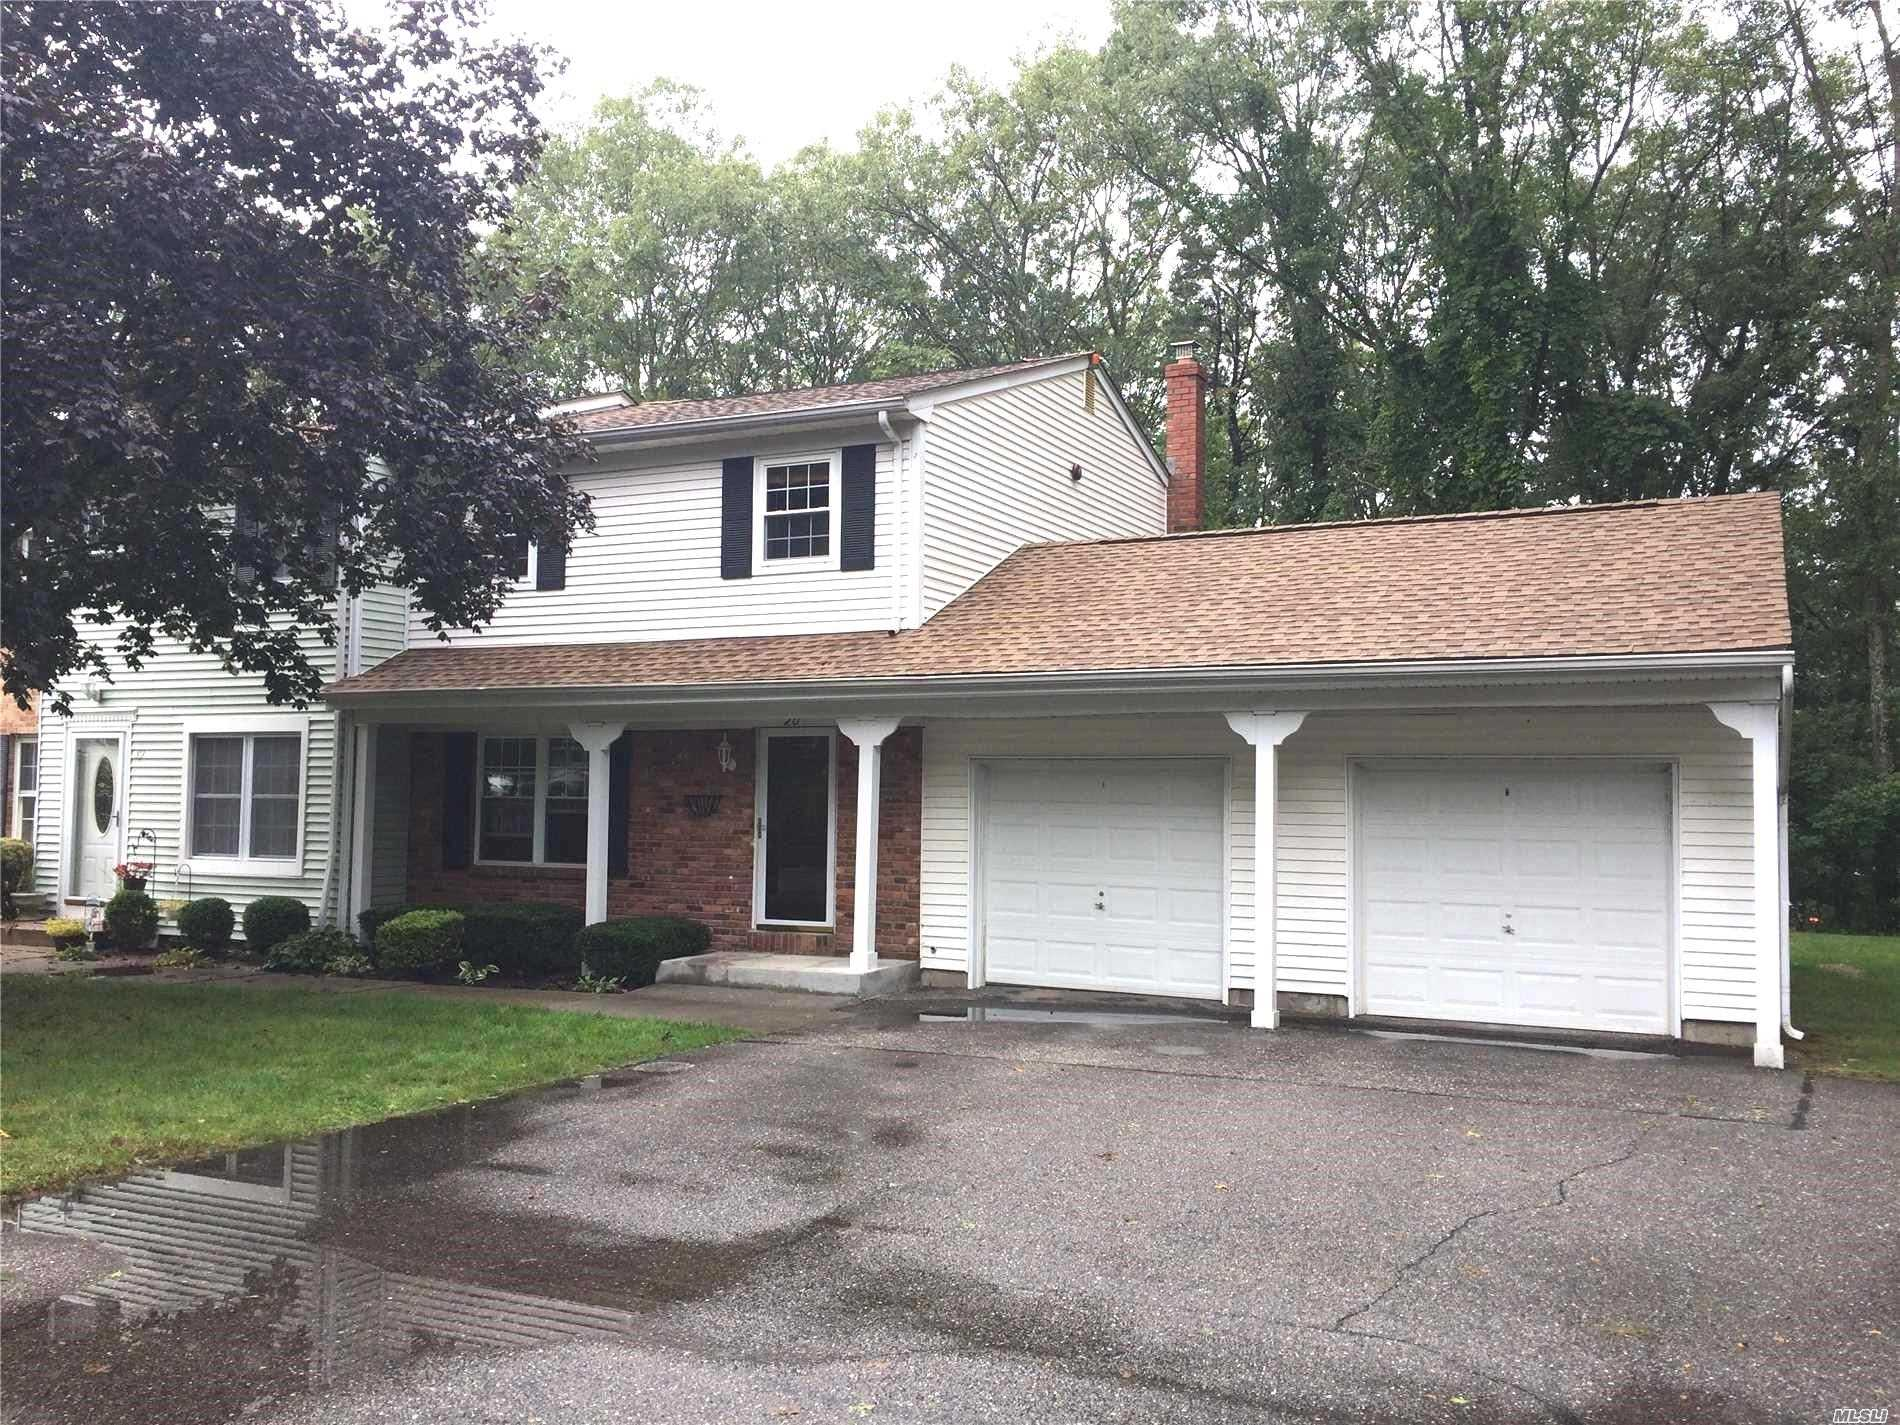 Sale May Be Subject To Term & Conditions Of An Offering Plan. Mint 3 Br All Updated, Dual Heating System Kit, Bth,  Crown Moldings, Chair Rails. Garage And Finished Bsmt Igp Club House, Tennis Courts, Basketball Courts And More Country Club Living!!